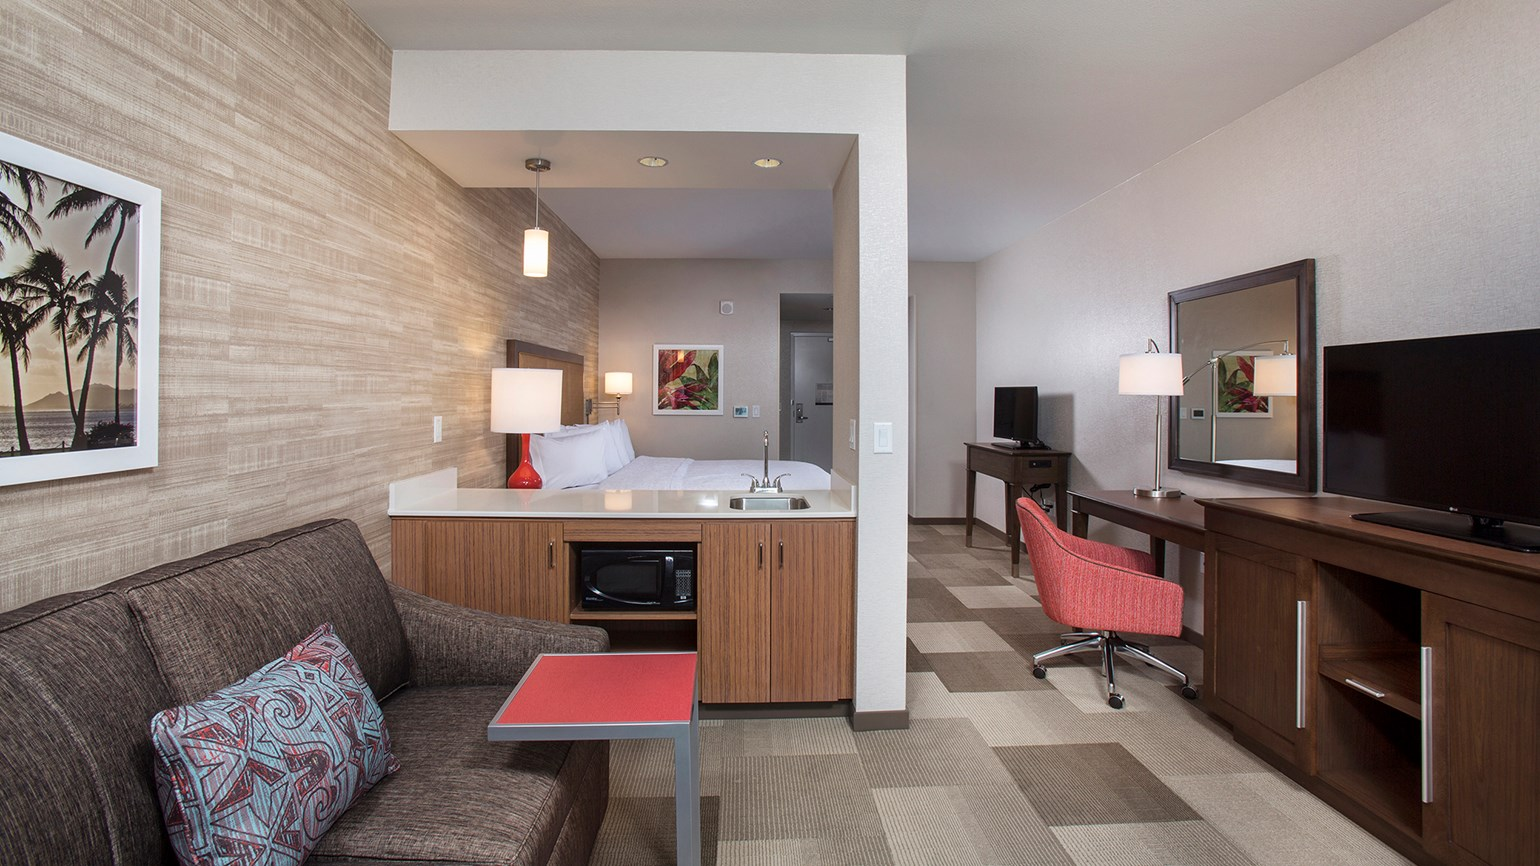 Hawaii's first Hampton Inn offers affordable option in west Oahu